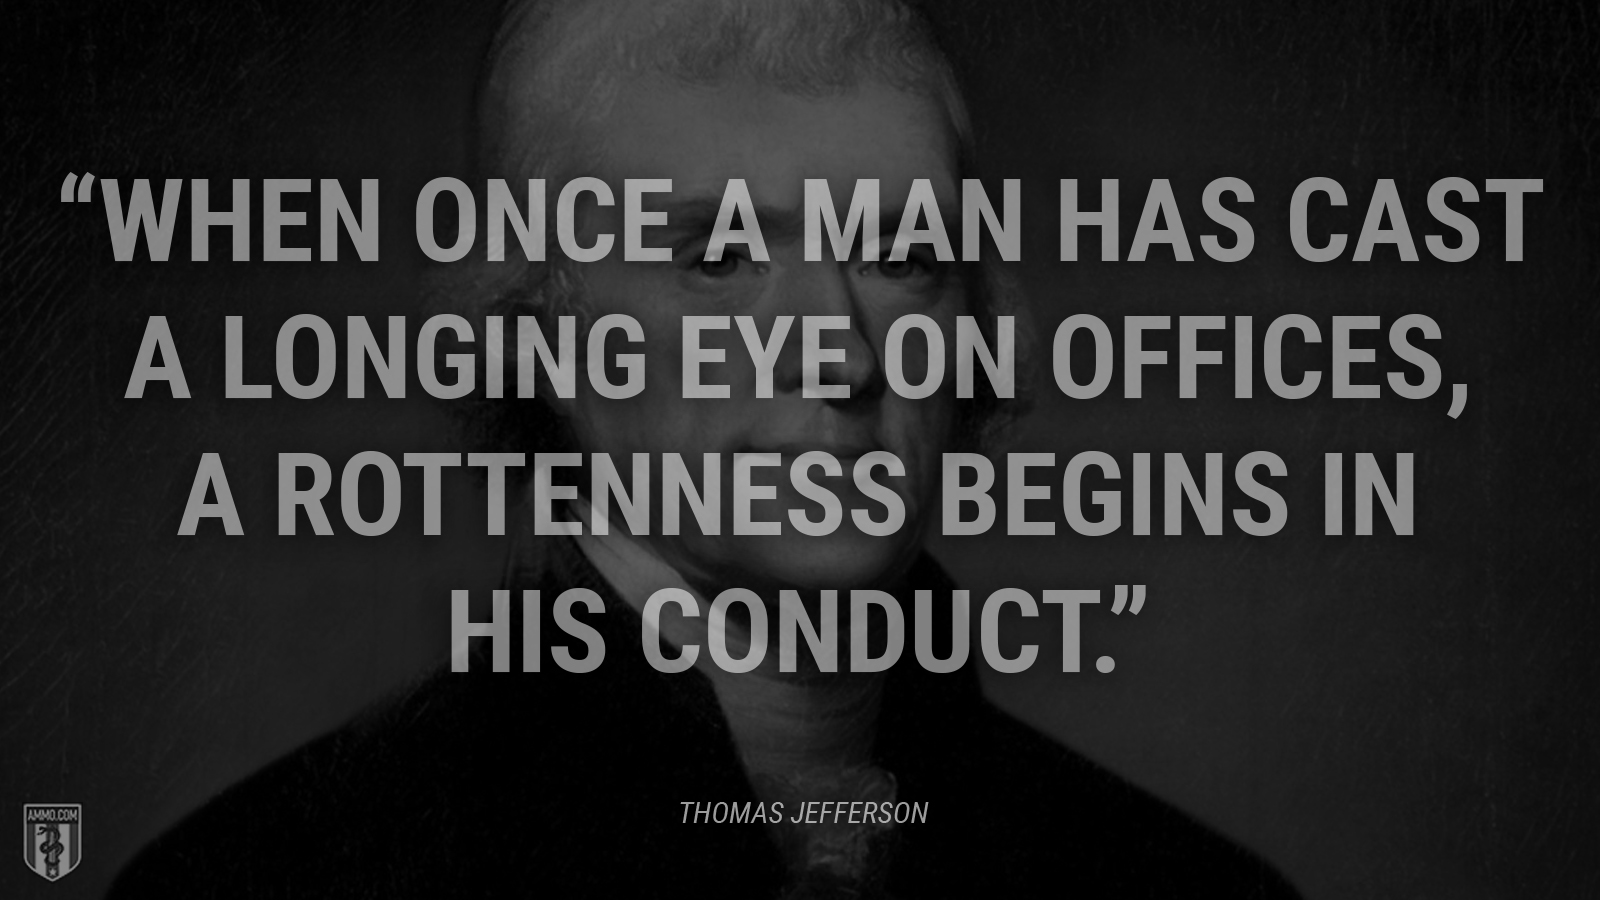 """When once a man has cast a longing eye on offices, a rottenness begins in his conduct."" - Thomas Jefferson"